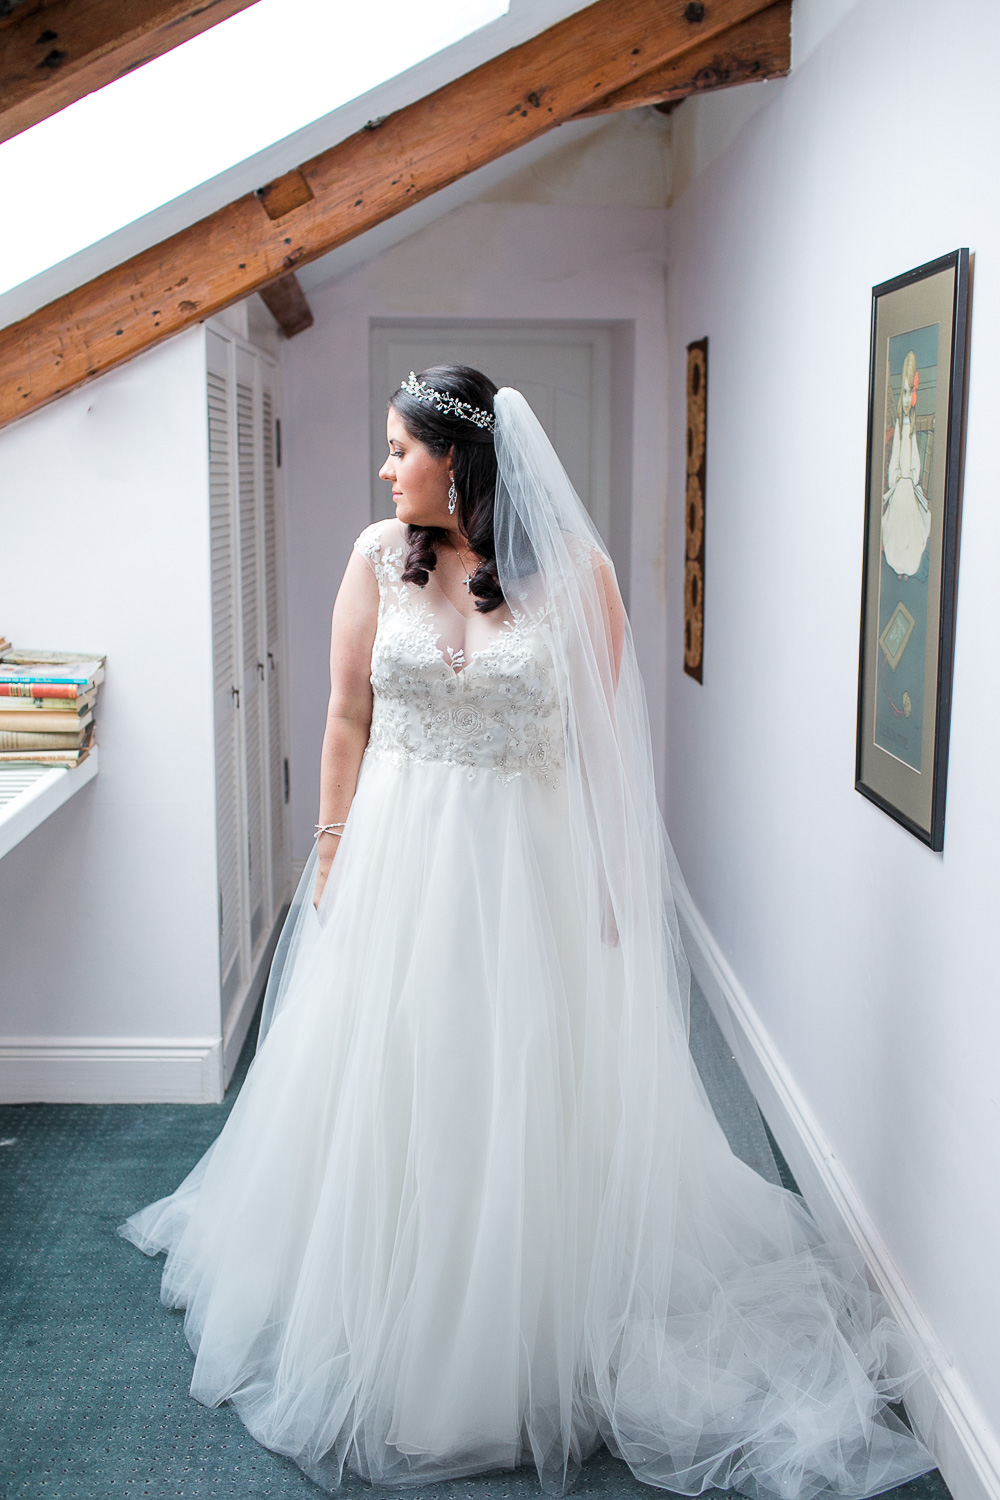 Bride standing lit by window light underneath the wooden beams